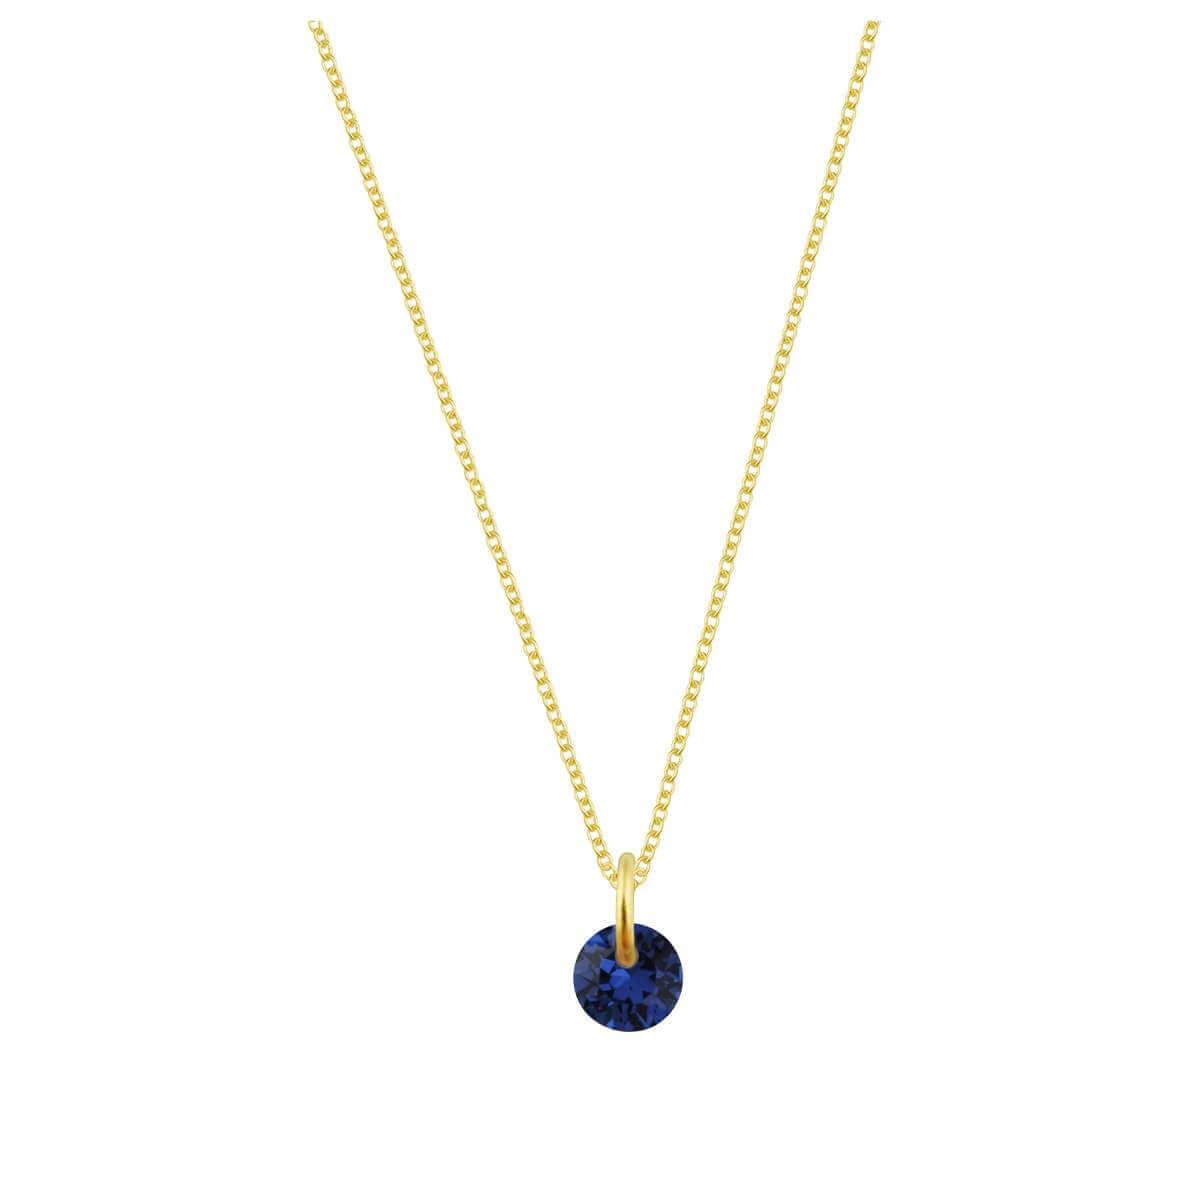 Gold Plated Sterling Silver & 4mm Sapphire CZ Necklace - 16 - 22 Inches